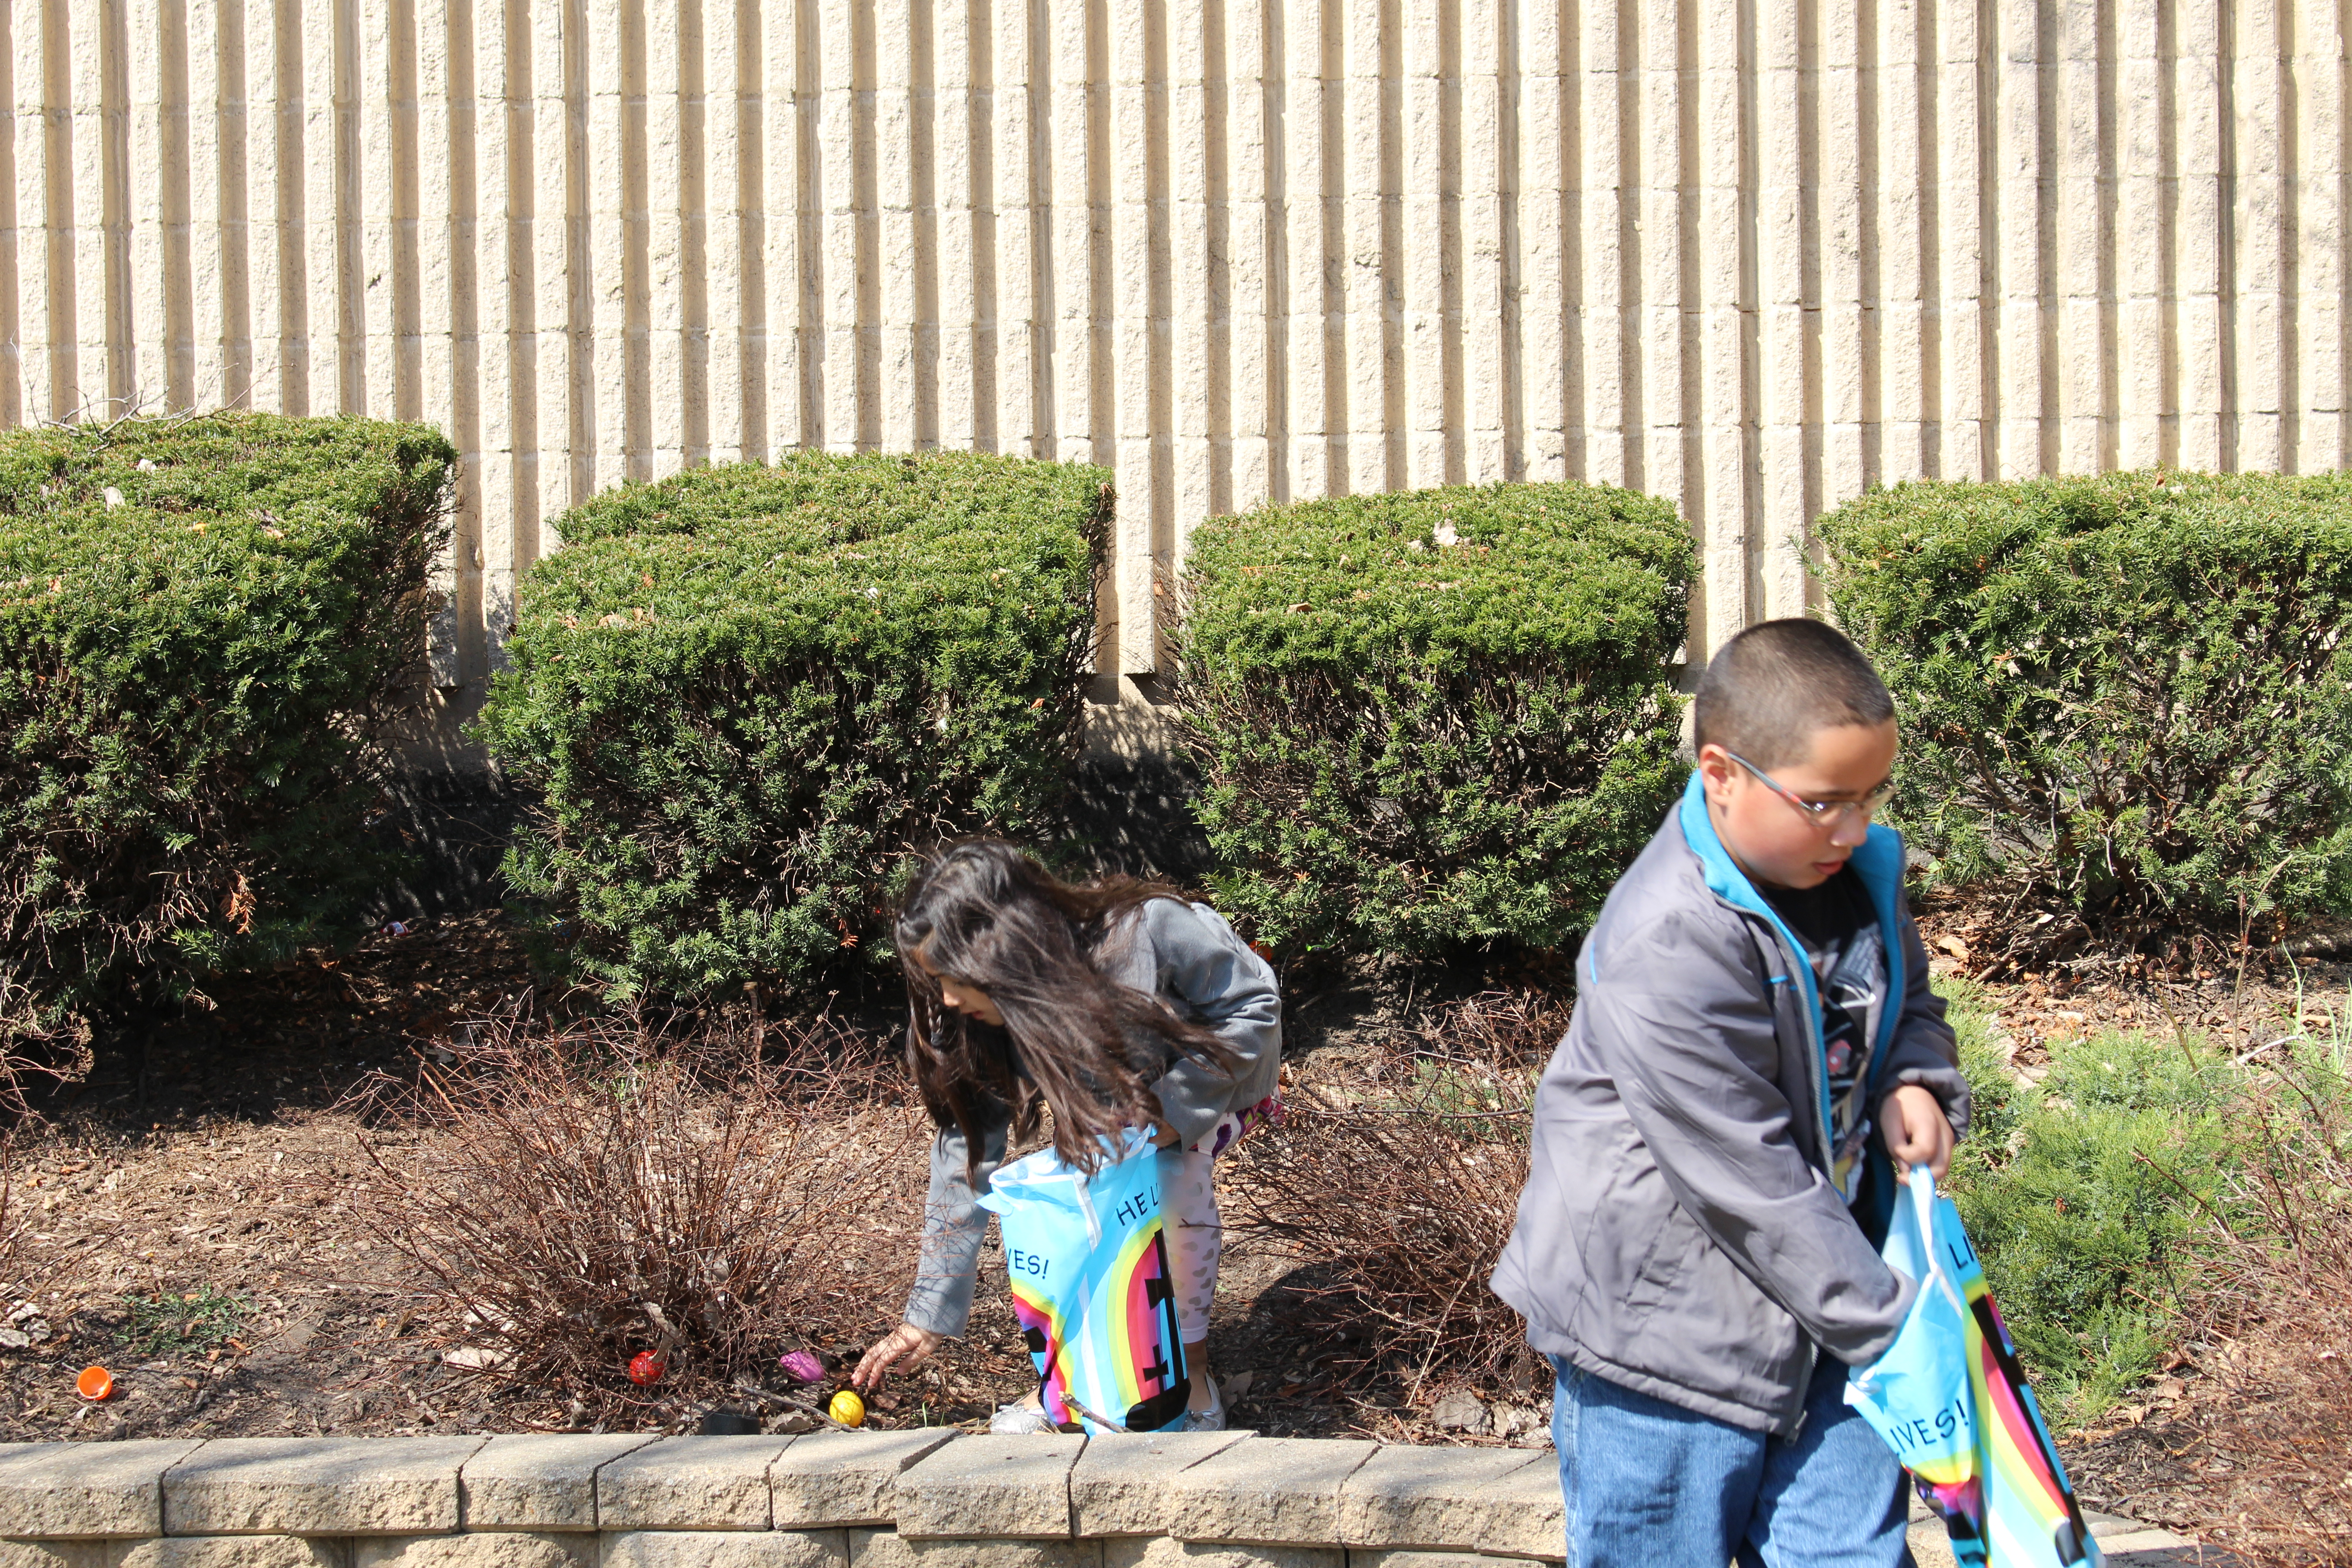 Our Blue Island KidsLife was able to take advantage of the great weather to do their Easter egg hunt outdoors-